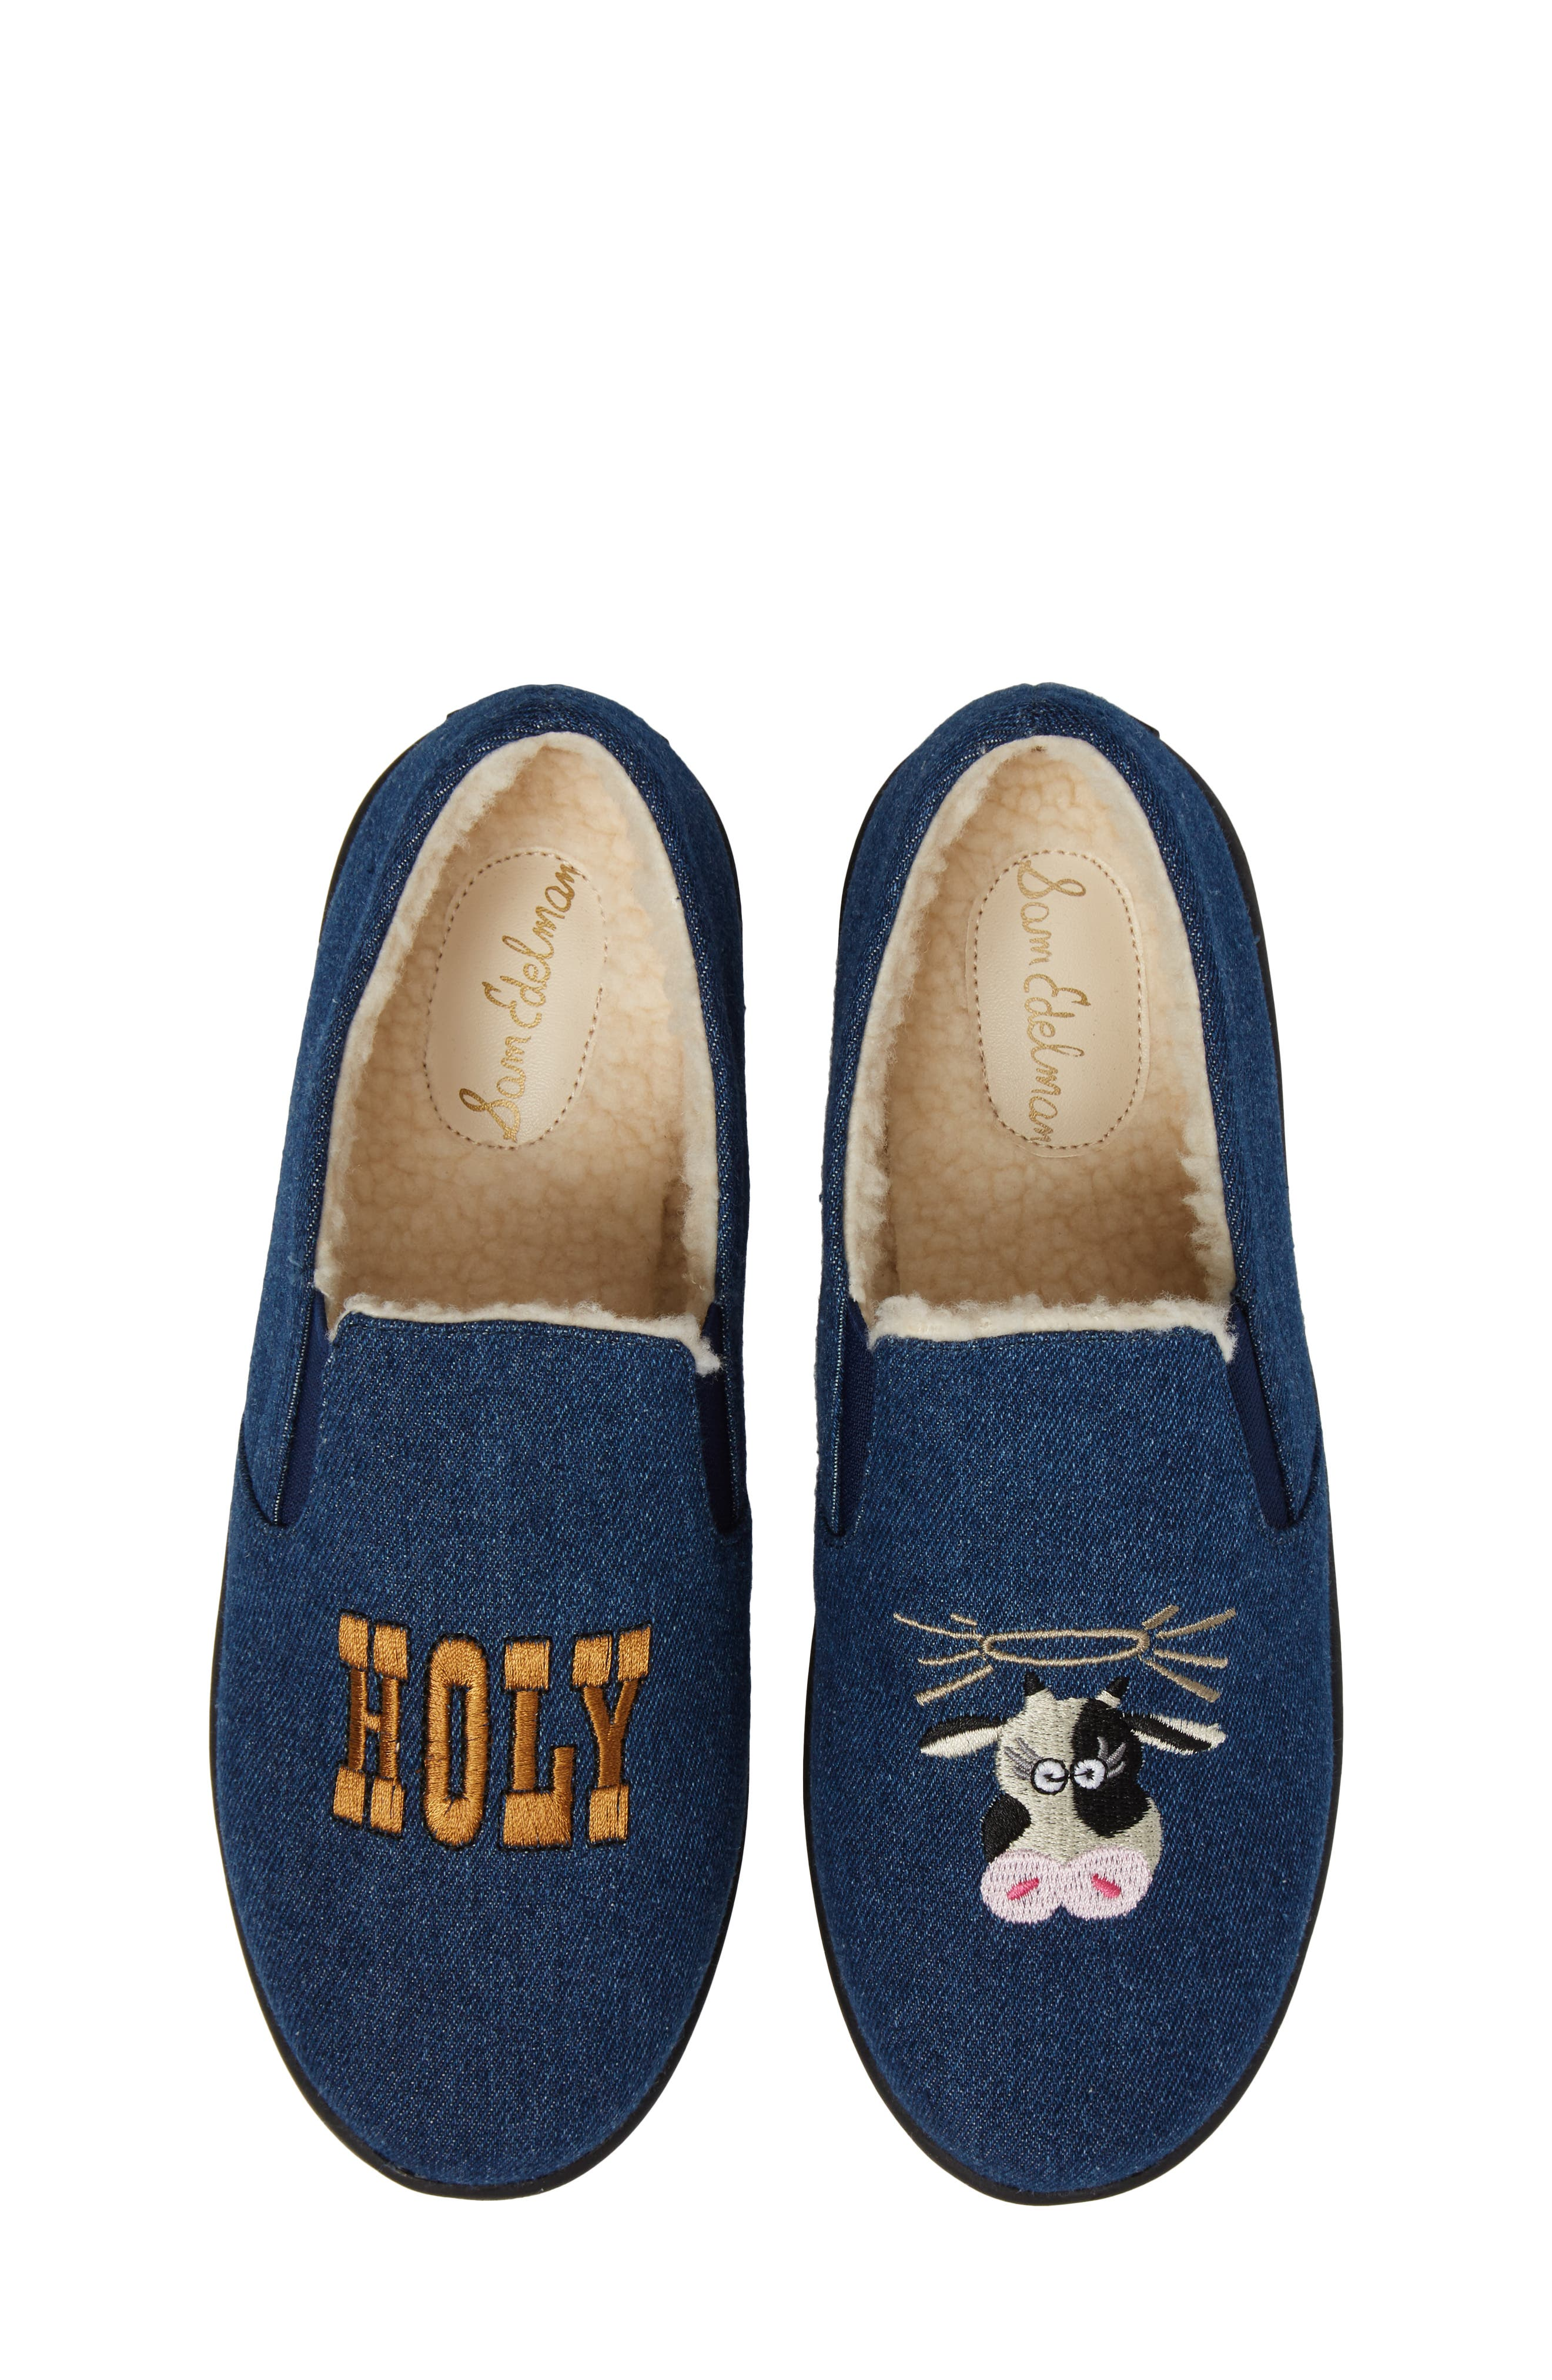 Cynthia Tala Holy Cow Embroidered Slippers,                             Alternate thumbnail 5, color,                             400